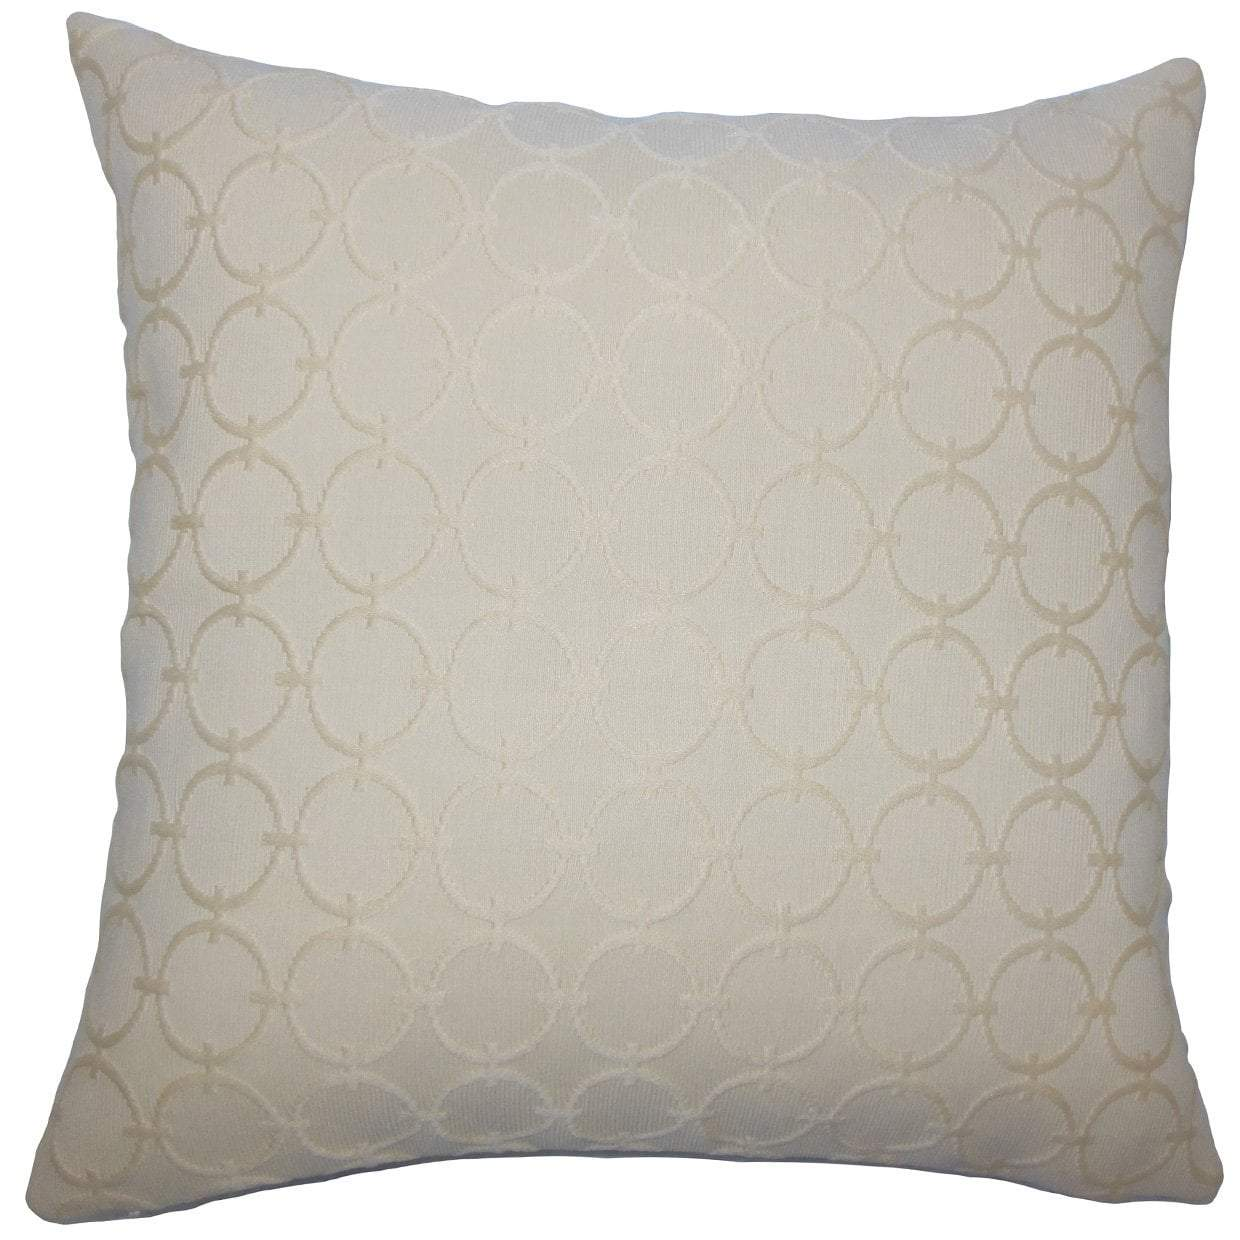 Madigan Throw Pillow Cover